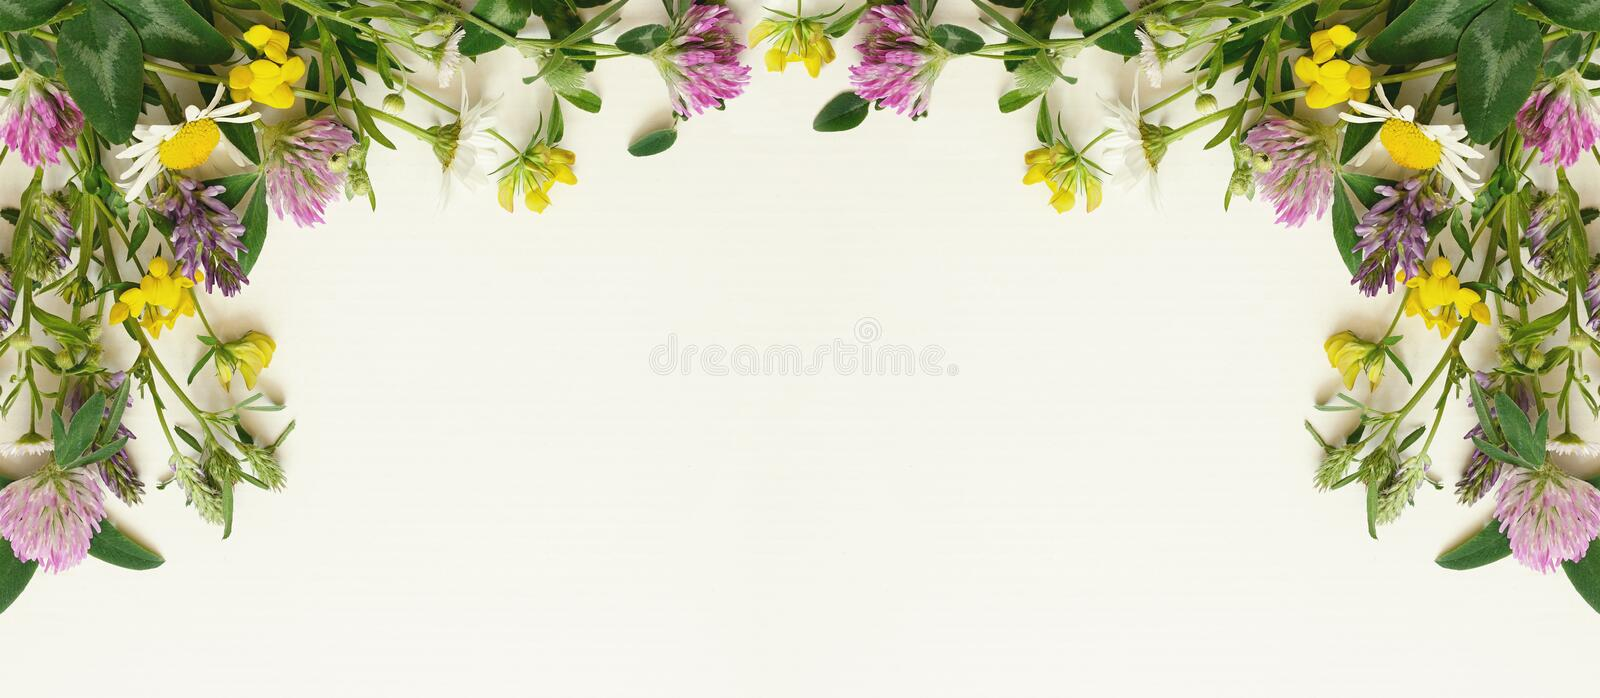 Wild flowers frame stock photo